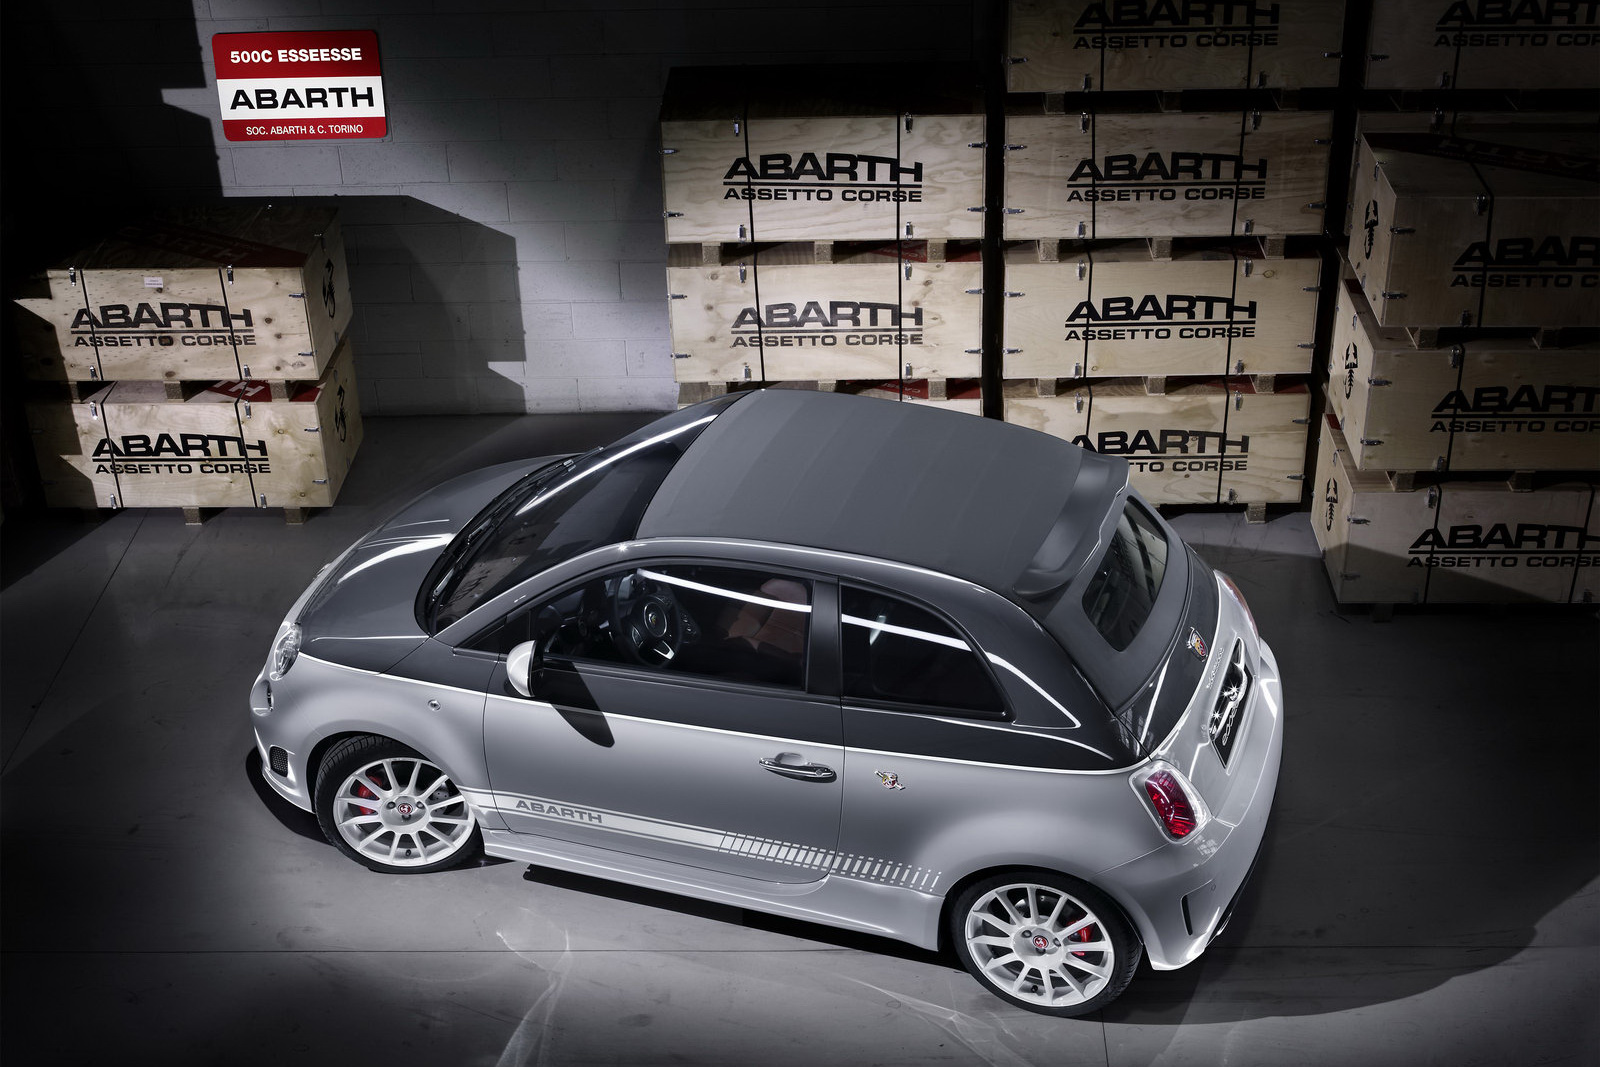 mondial de paris 2010 abarth 500c esseesse le ciel. Black Bedroom Furniture Sets. Home Design Ideas